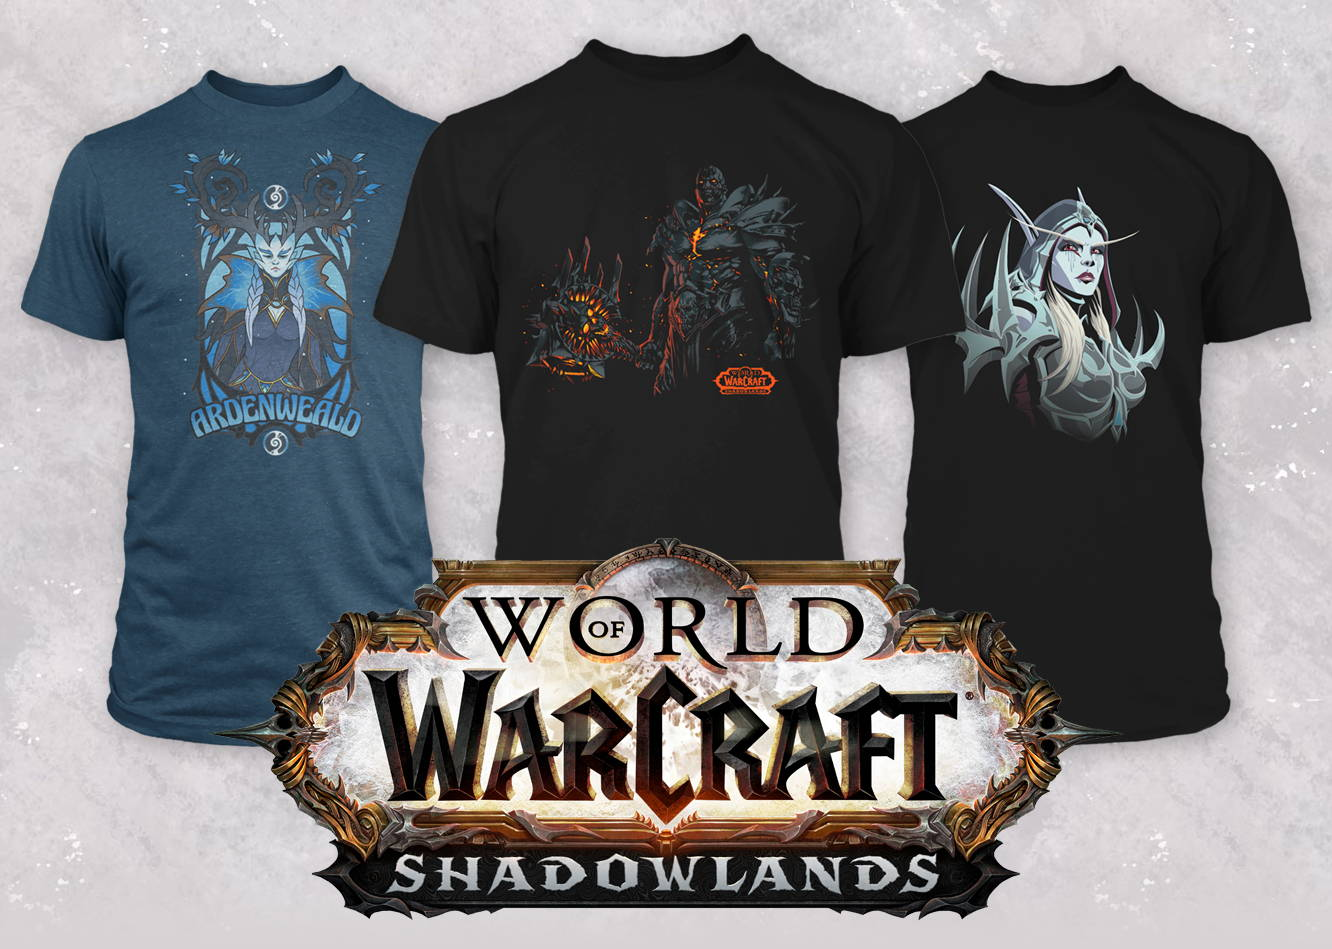 World of Warcraft Shadowlands collection of tees